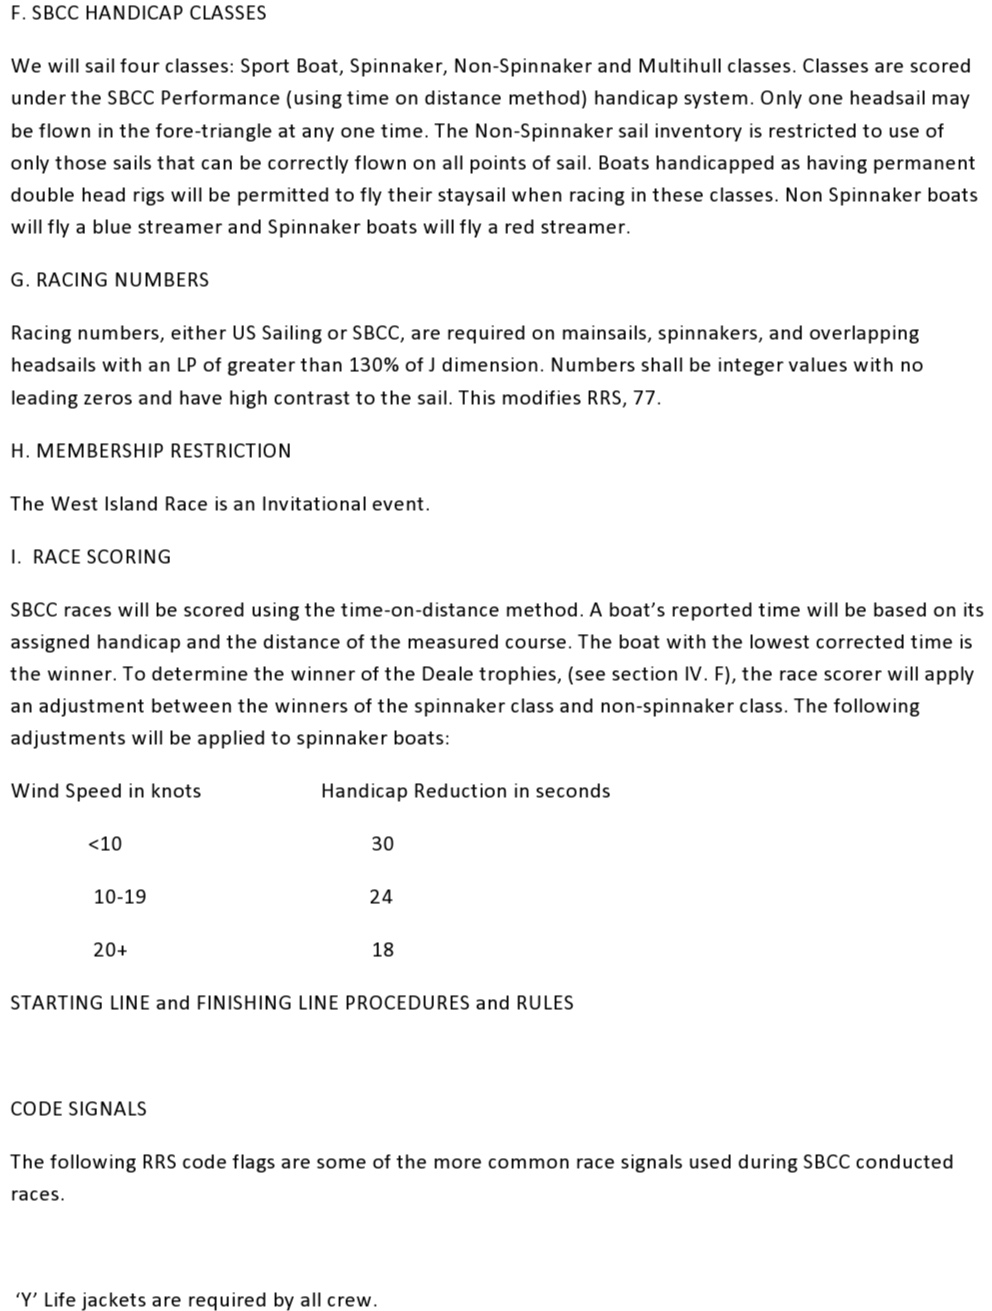 WEST+ISLAND+INVITATIONAL+NOTICE+OF+RACE+SATURDAY+AUG+17TH+2019-page0002.jpg